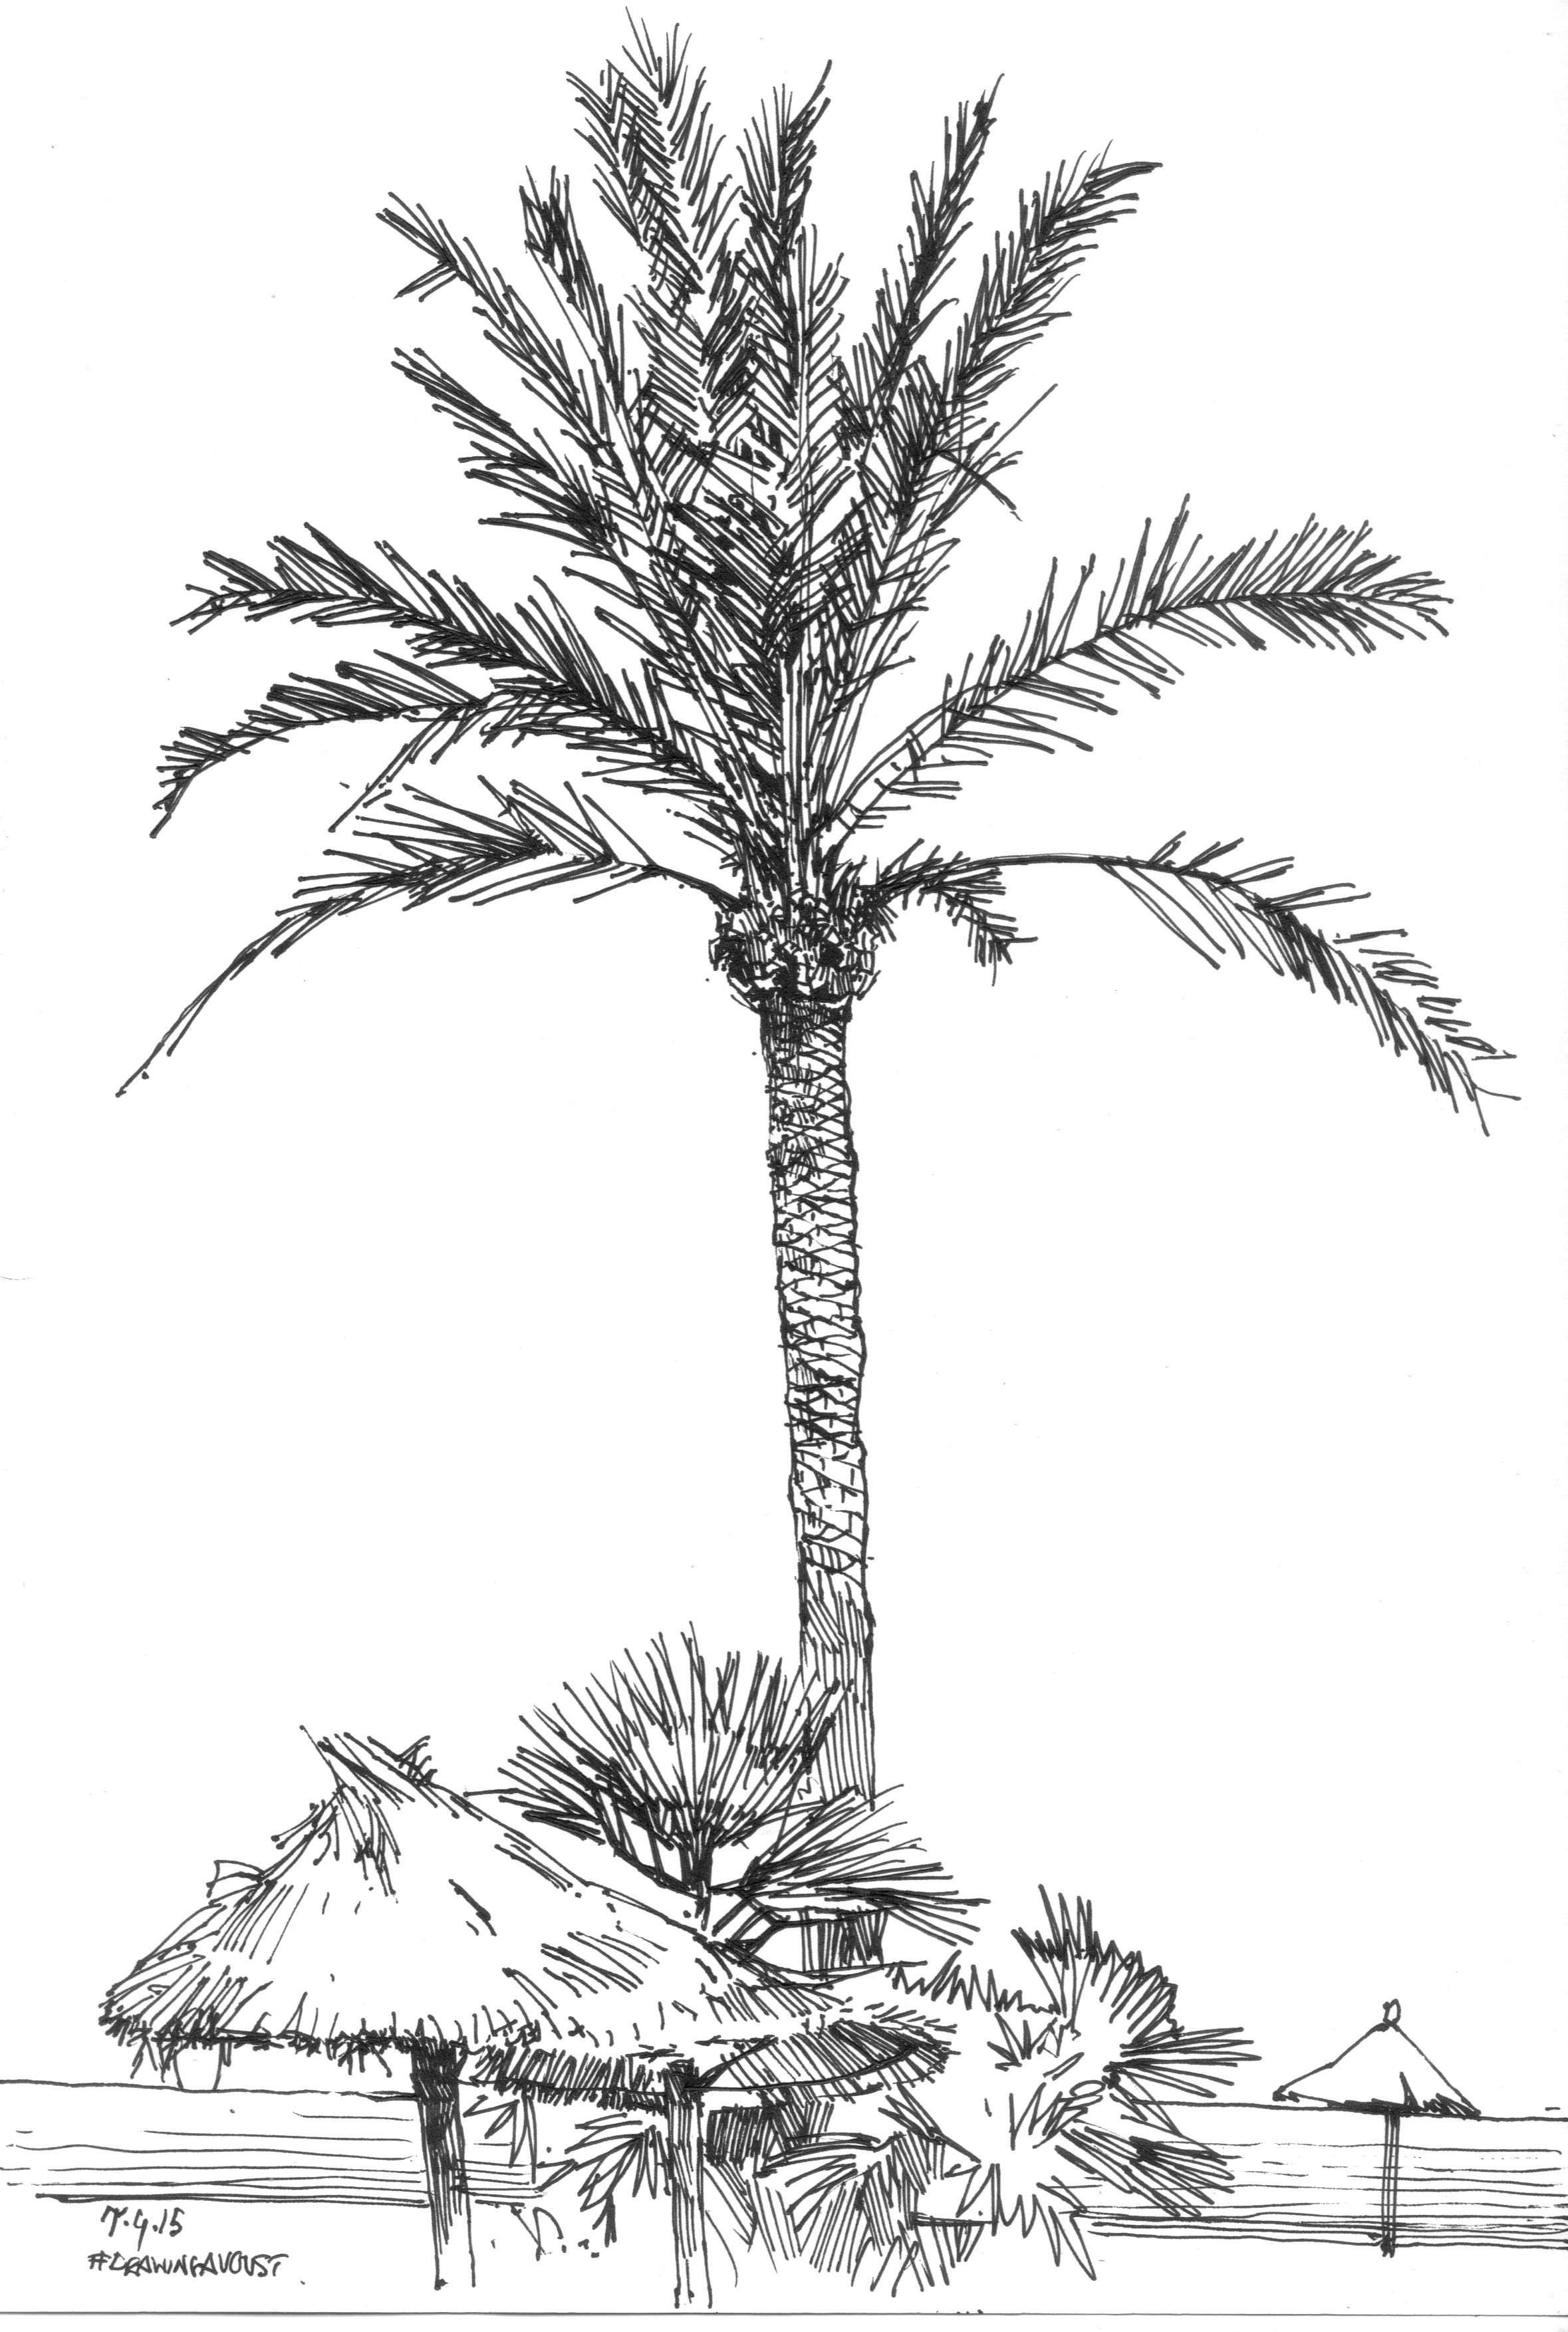 Pin by Debs McLaughlin on palm trees in 2019 | Palm tree ...